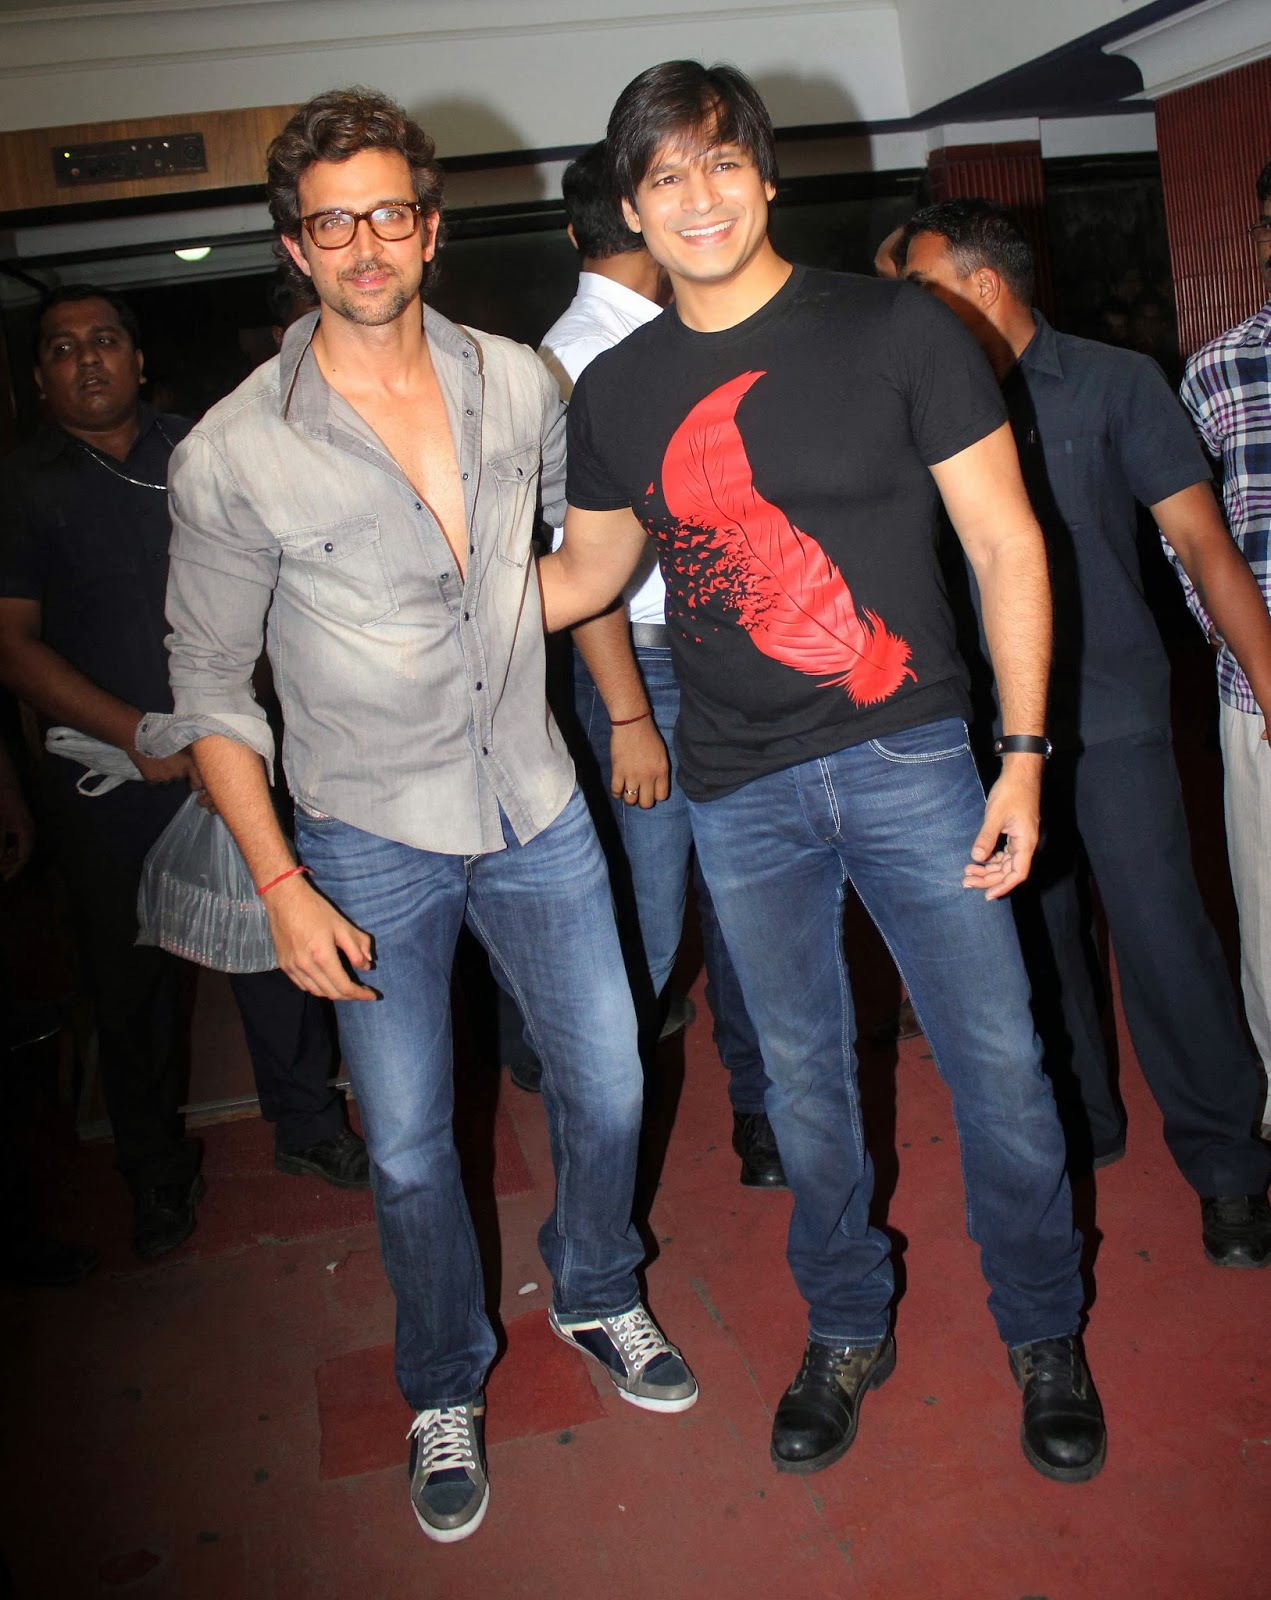 filmee club: hrithik roshan & vivek promote 'krrish 3' at chandan